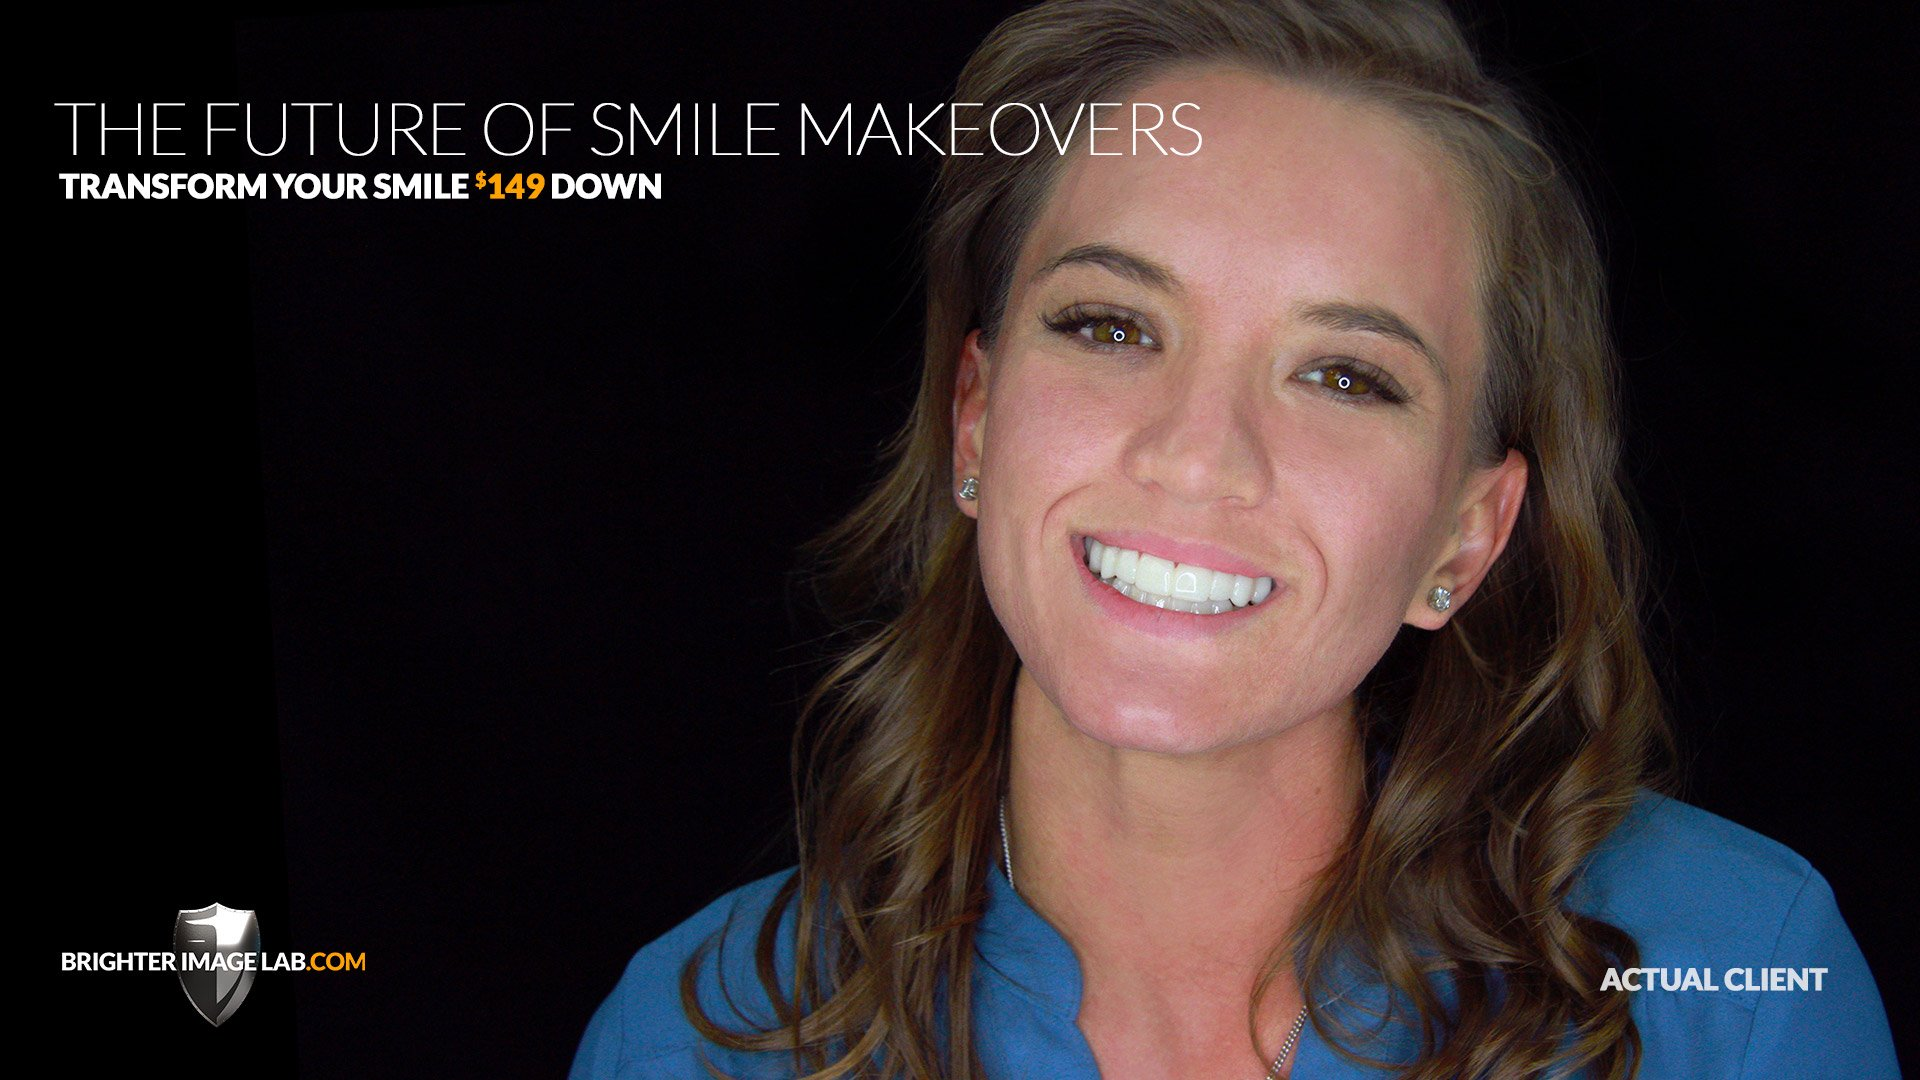 The Future of Smile Makeovers - Transform your smile $149 down